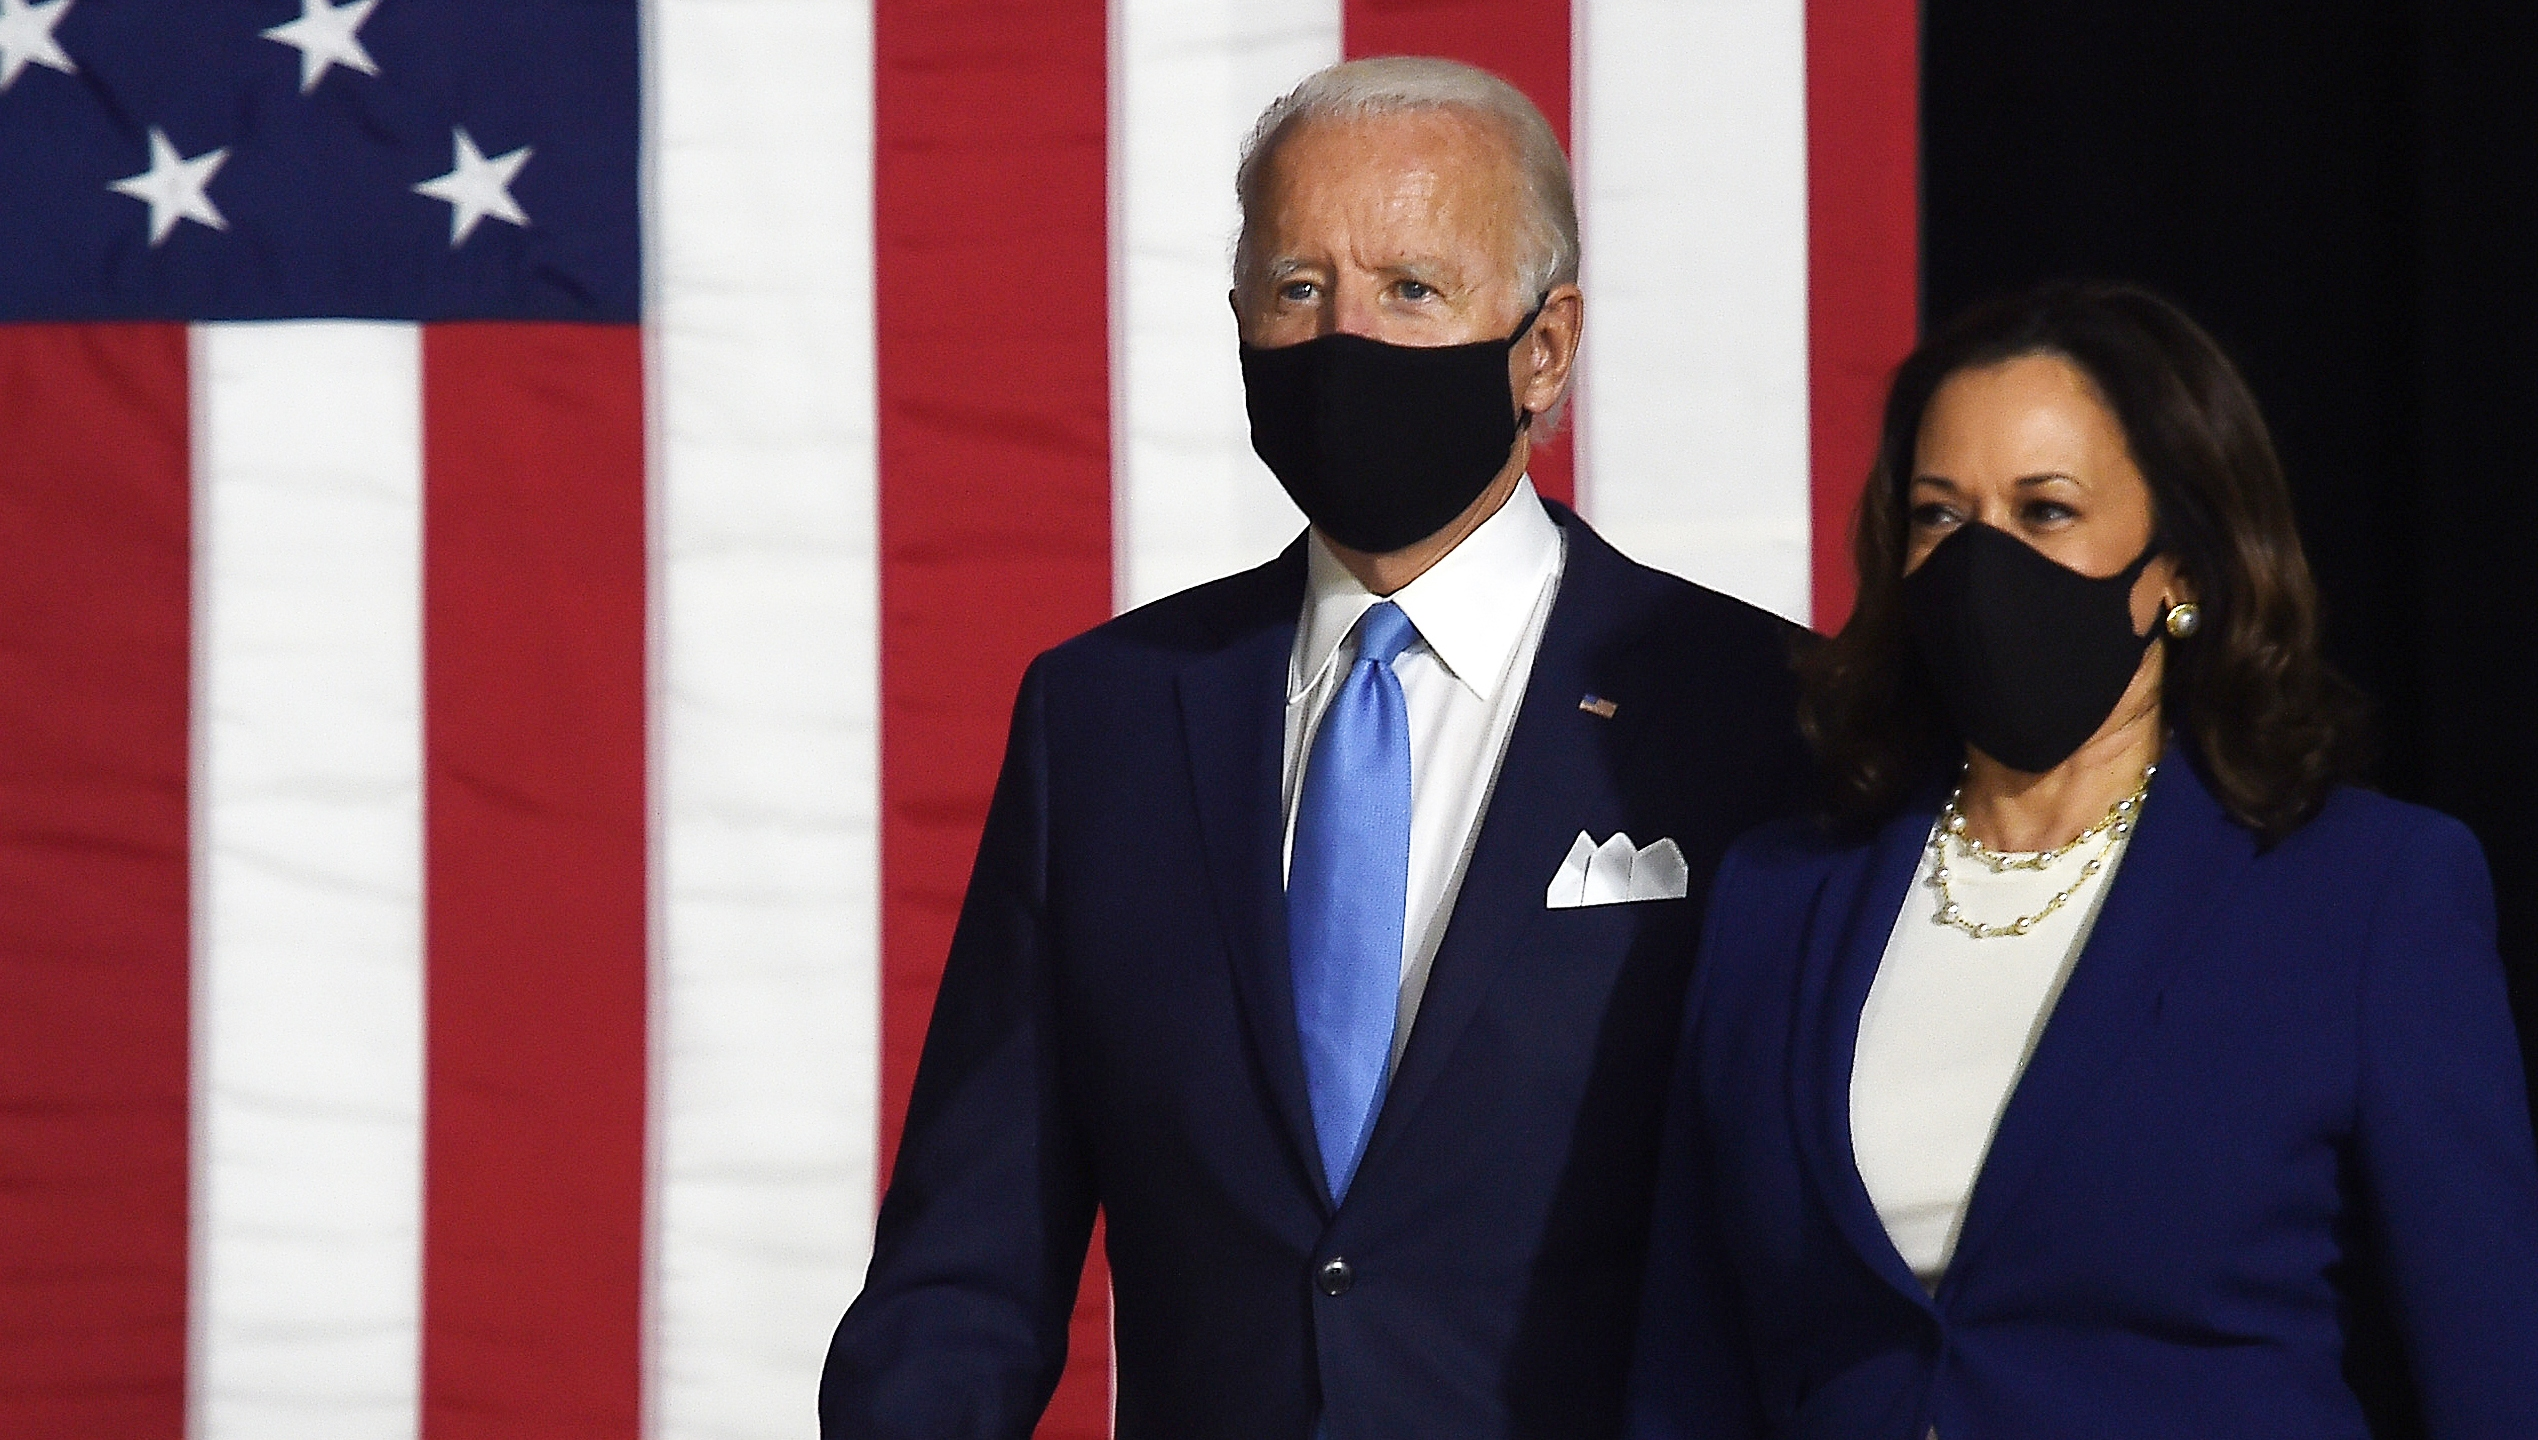 Democratic presidential nominee and Joe Biden and vice presidential running mate, Senator Kamala Harris, arrive to conduct their first press conference together in Wilmington, Delaware, on Aug. 12, 2020. (Olivier DOULIERY via Getty Images)